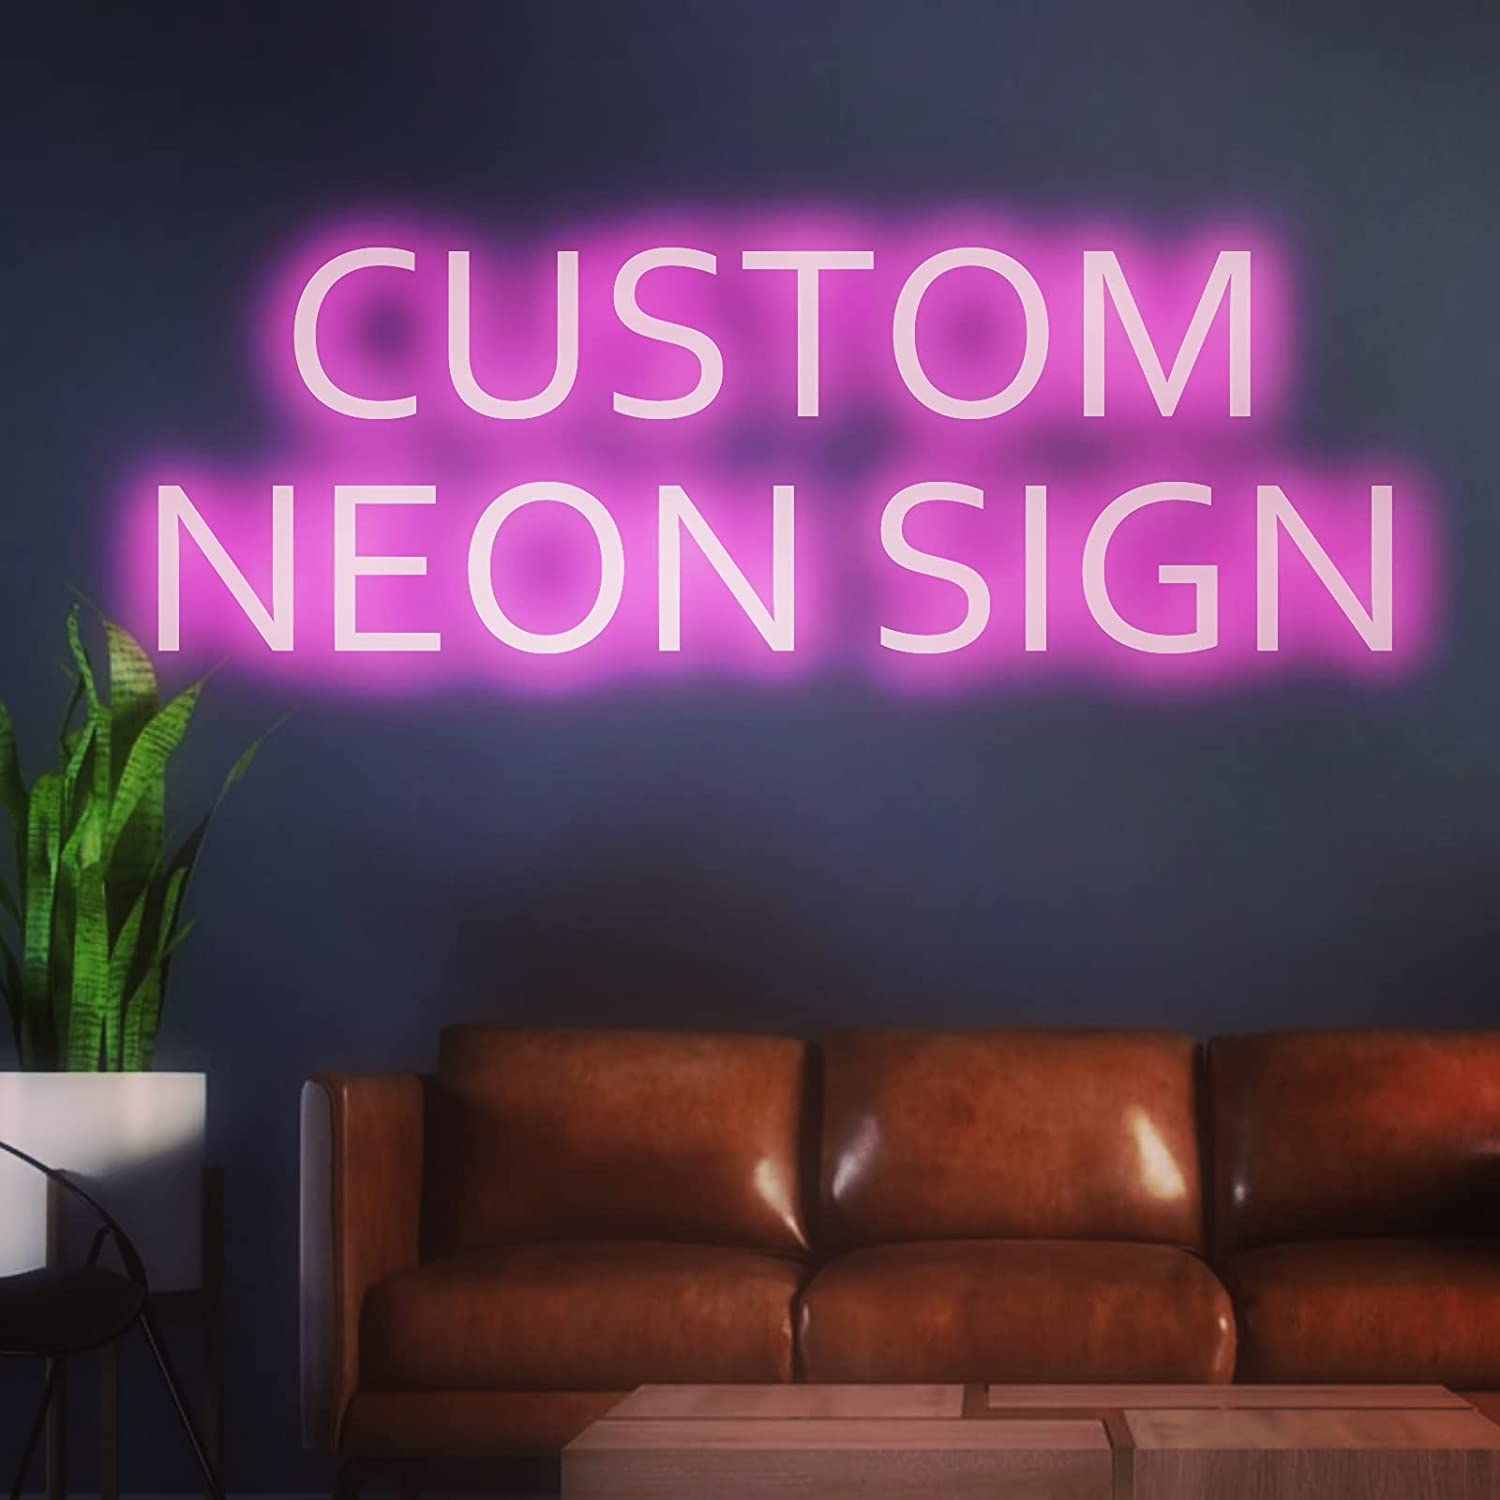 Personalized Neon Signs Upon Request, Customize Your Sign Here Handmade Signs Custom Neon Sign Party Office Wedding and Bar